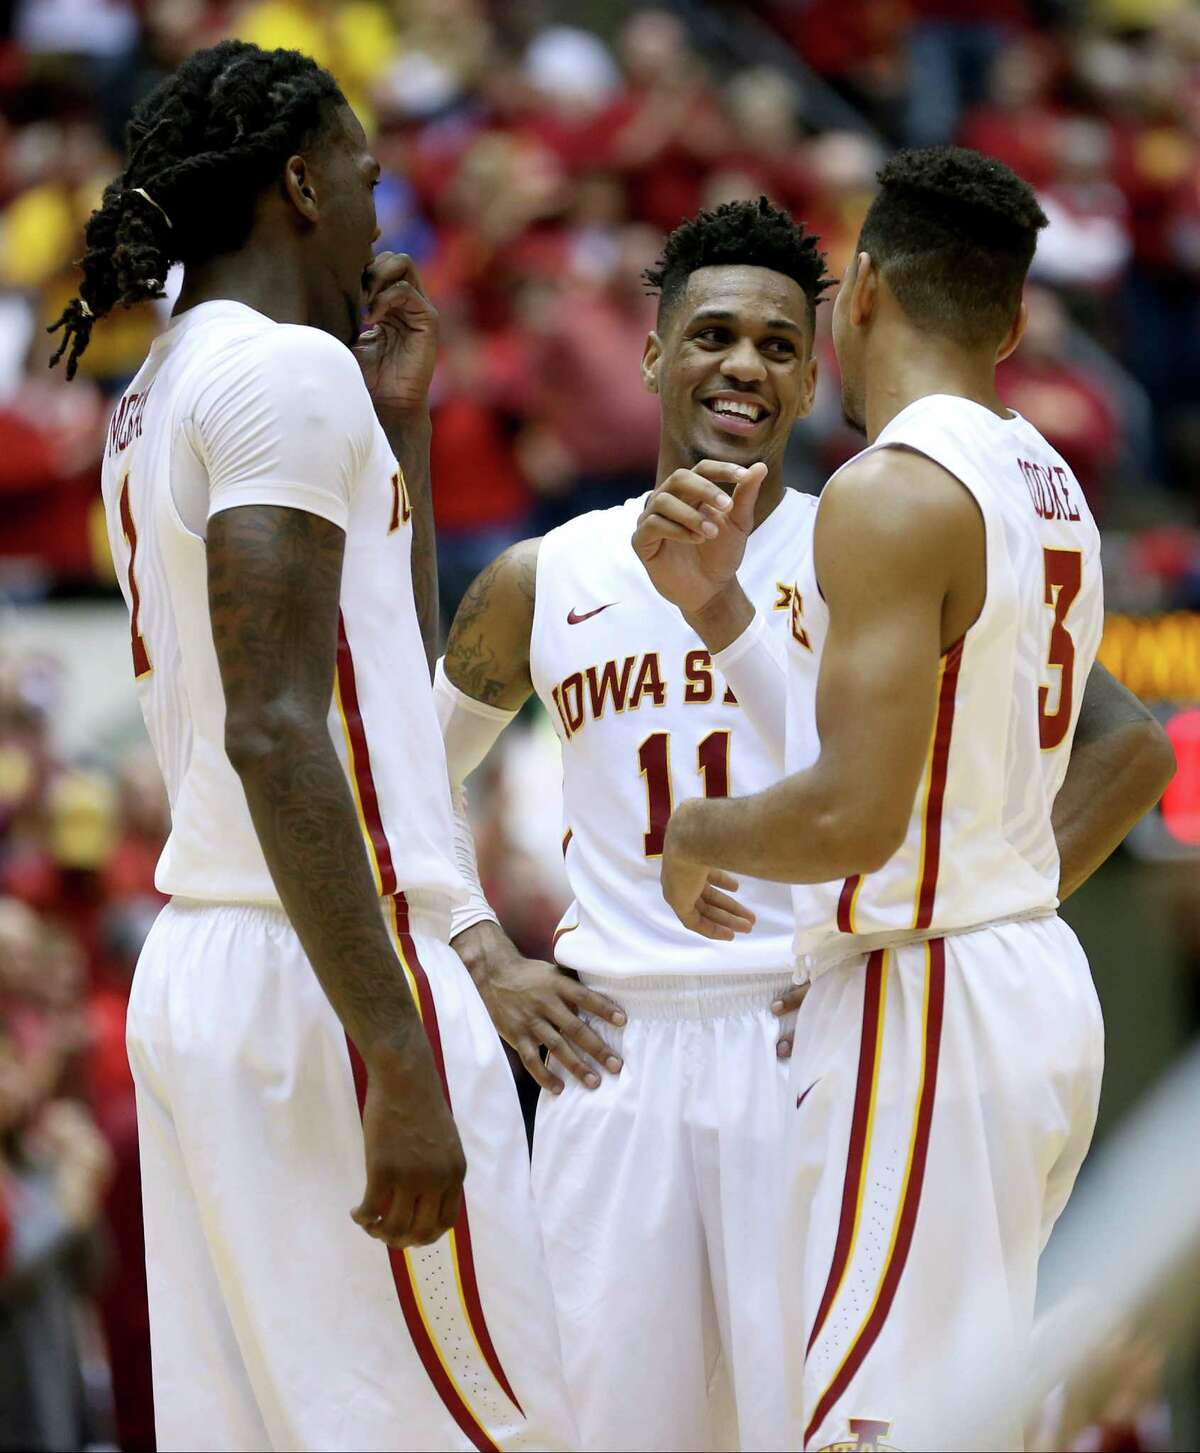 Iowa State Under new coach Steve Prohm, the Cyclones are living up to the lofty expectations they had before the season started. The balanced team (five players average double digits in scoring) is 9-0 to start the year.